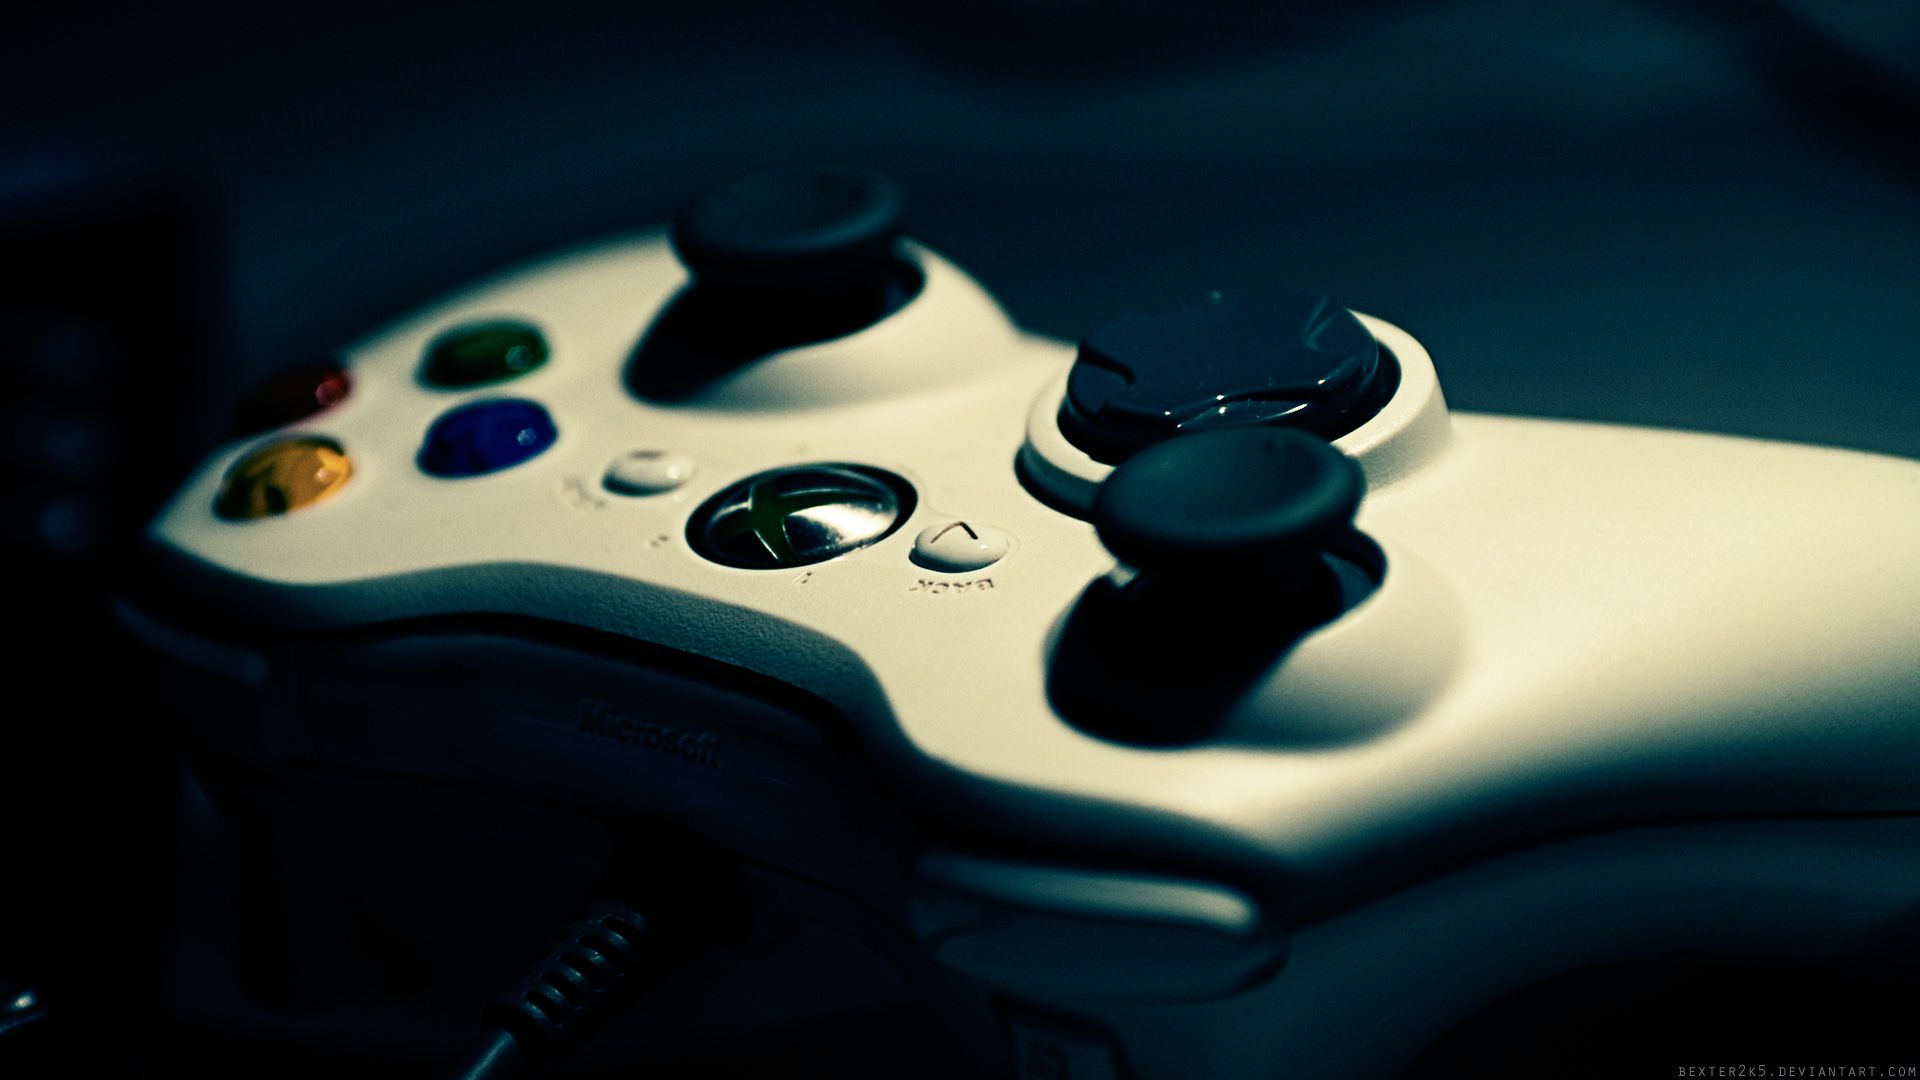 manette xbox 360 :p | gamer | pinterest | xbox and wallpaper